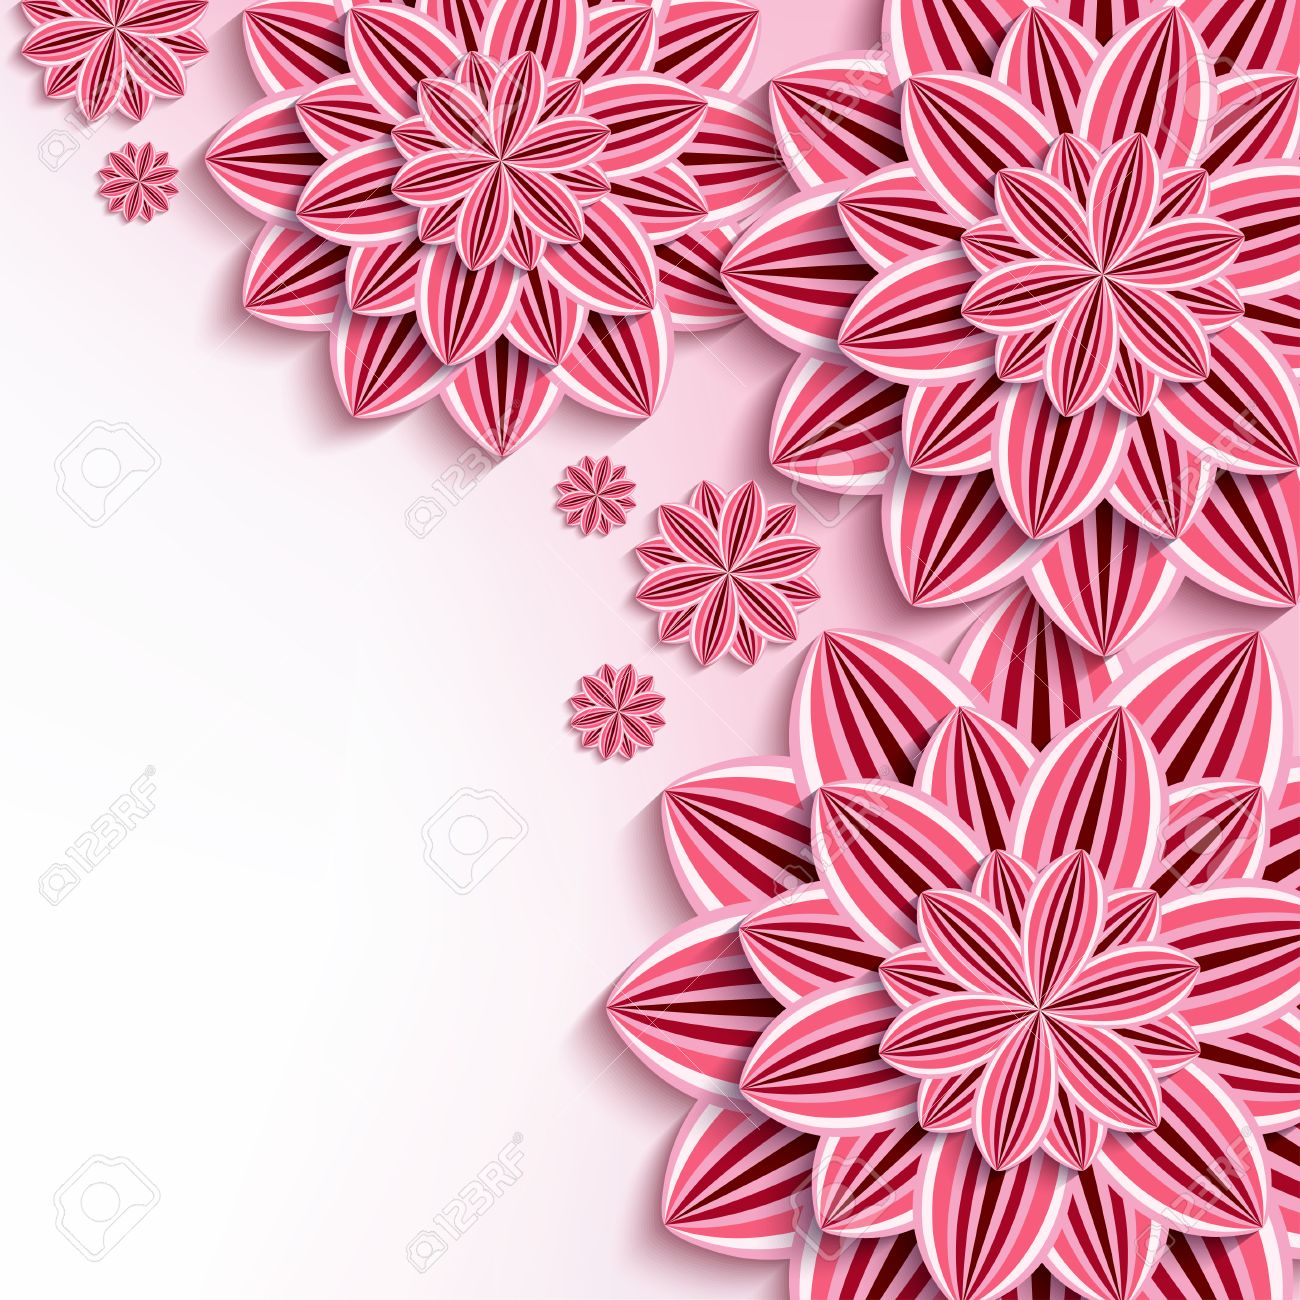 Floral Elegant Background With Pink 3d Flowers Dahlia Cutting Paper